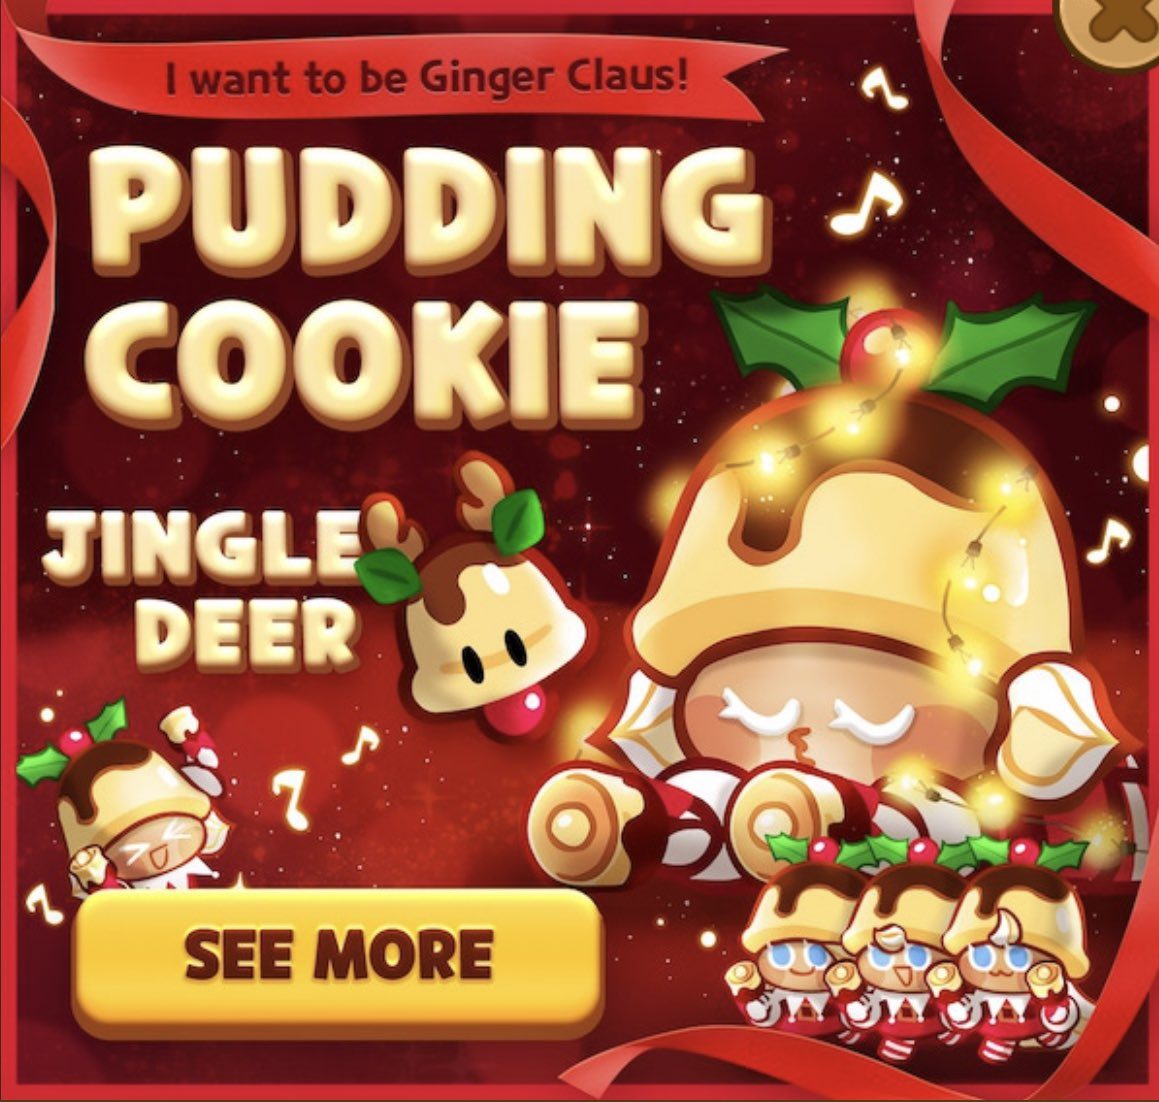 Cookie Run Updates Hiatus On Twitter Ovenbreak Pudding Cookie And Jingle Deer Are Here To Brighten The Cookie World This Christmas Obtain Ginger Claus Jr From Shop Gacha Or Package